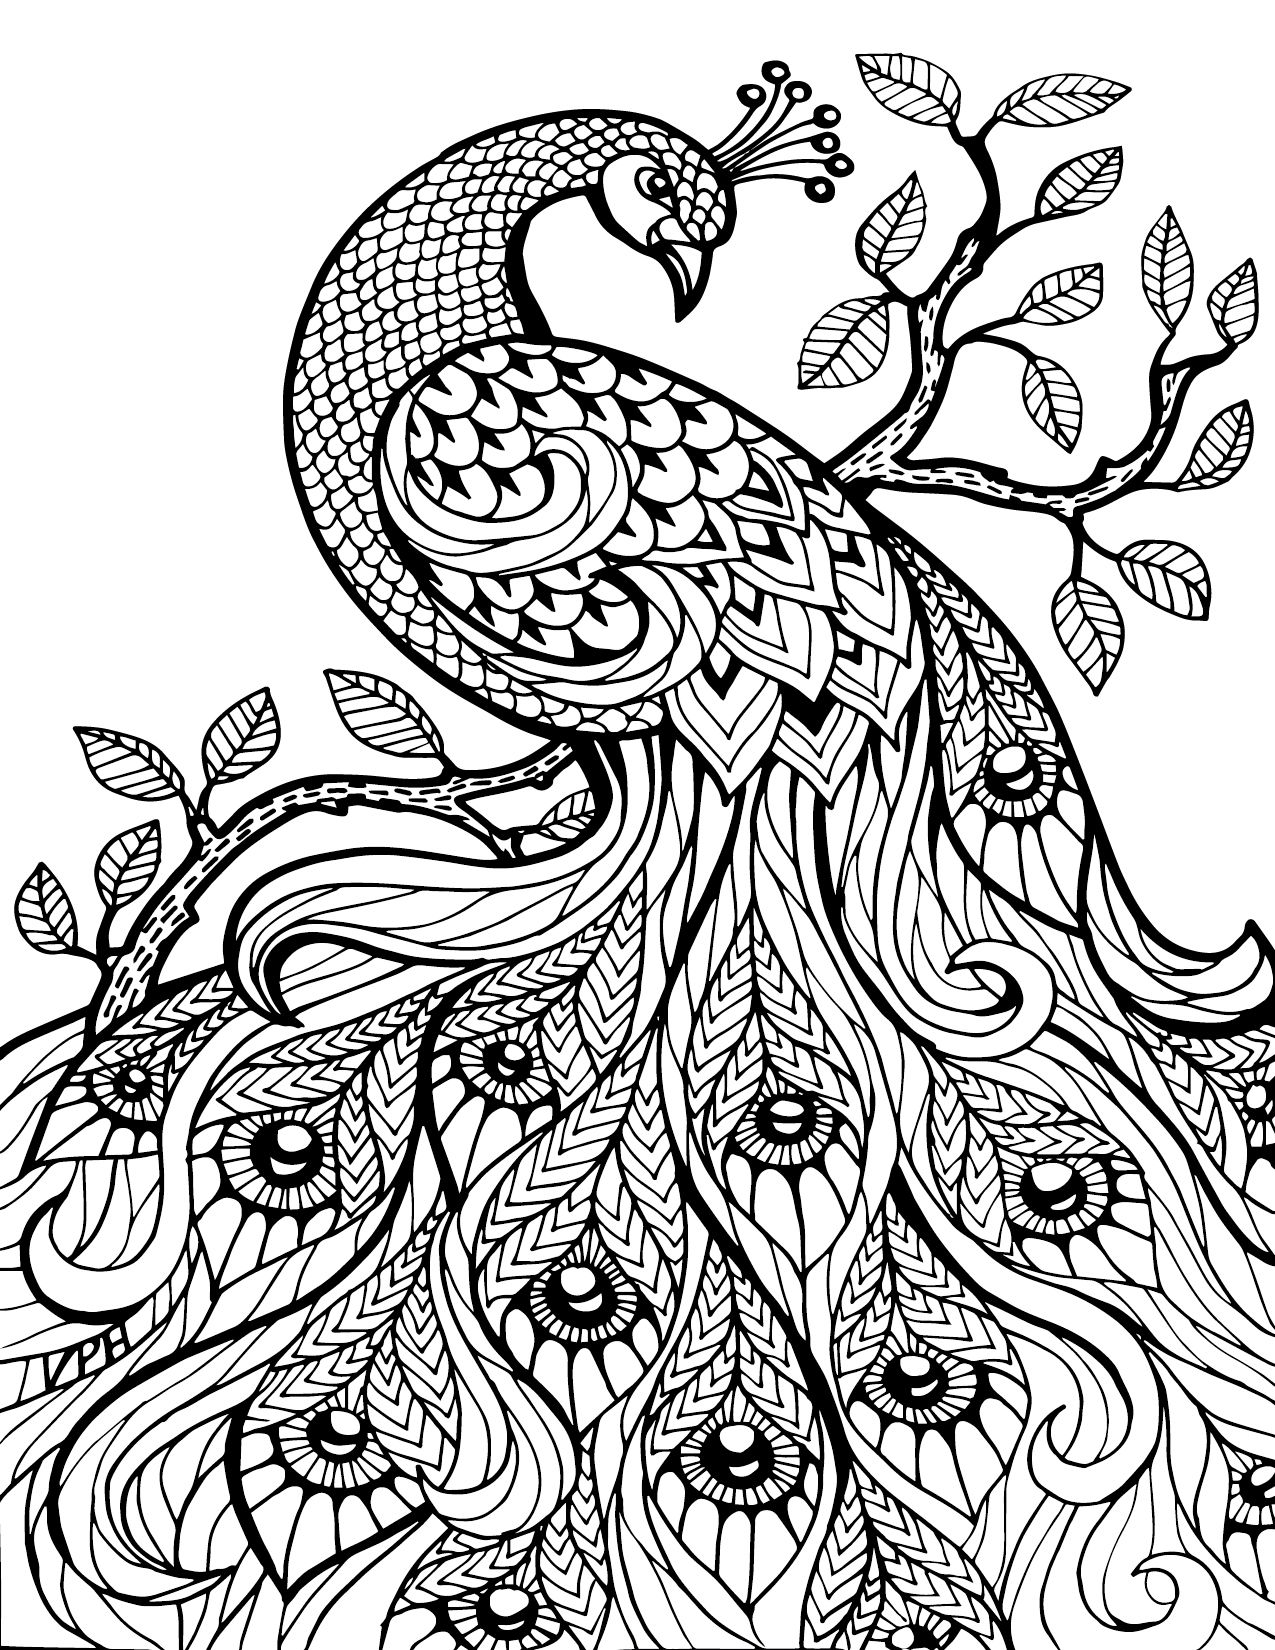 Coloring adults books - The 25 Best Adult Coloring Pages Ideas On Pinterest Colour Book Free Coloring Sheets And Colour Pattern